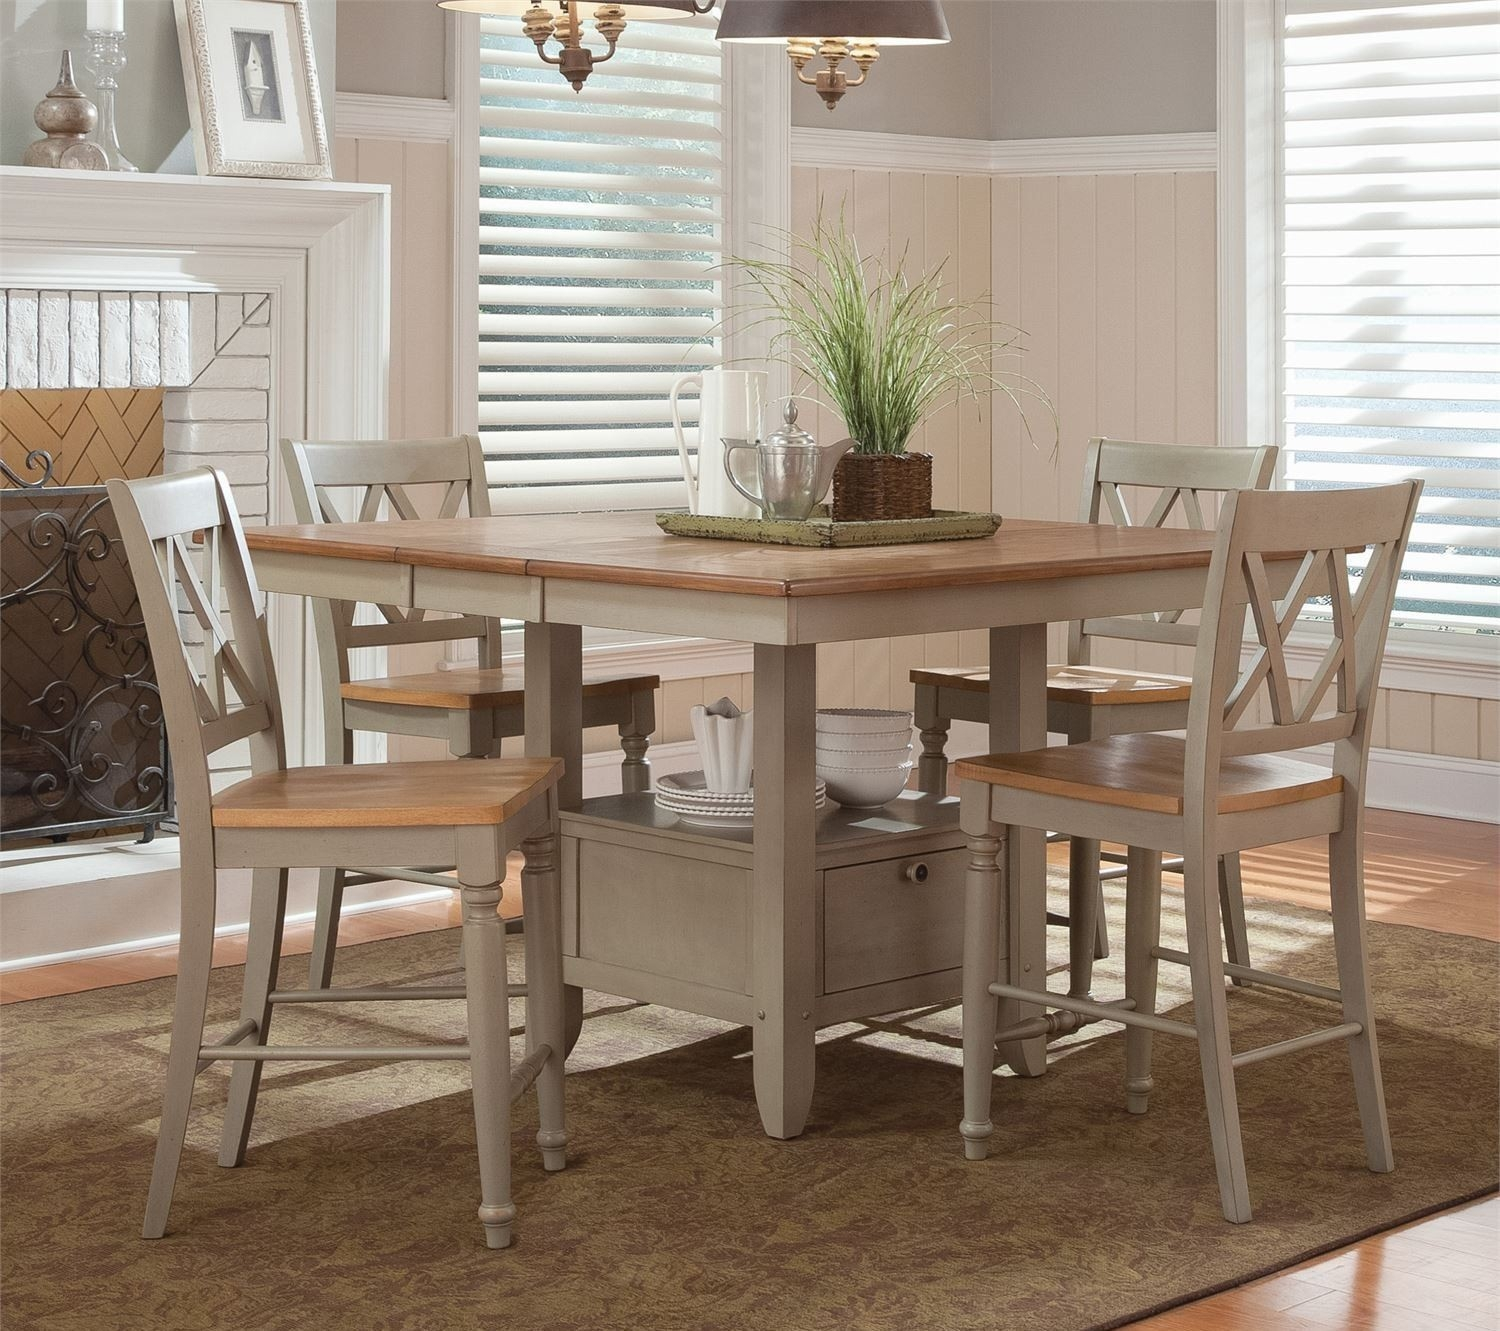 Superior Light Wood Counter Height Dining Sets 6 .